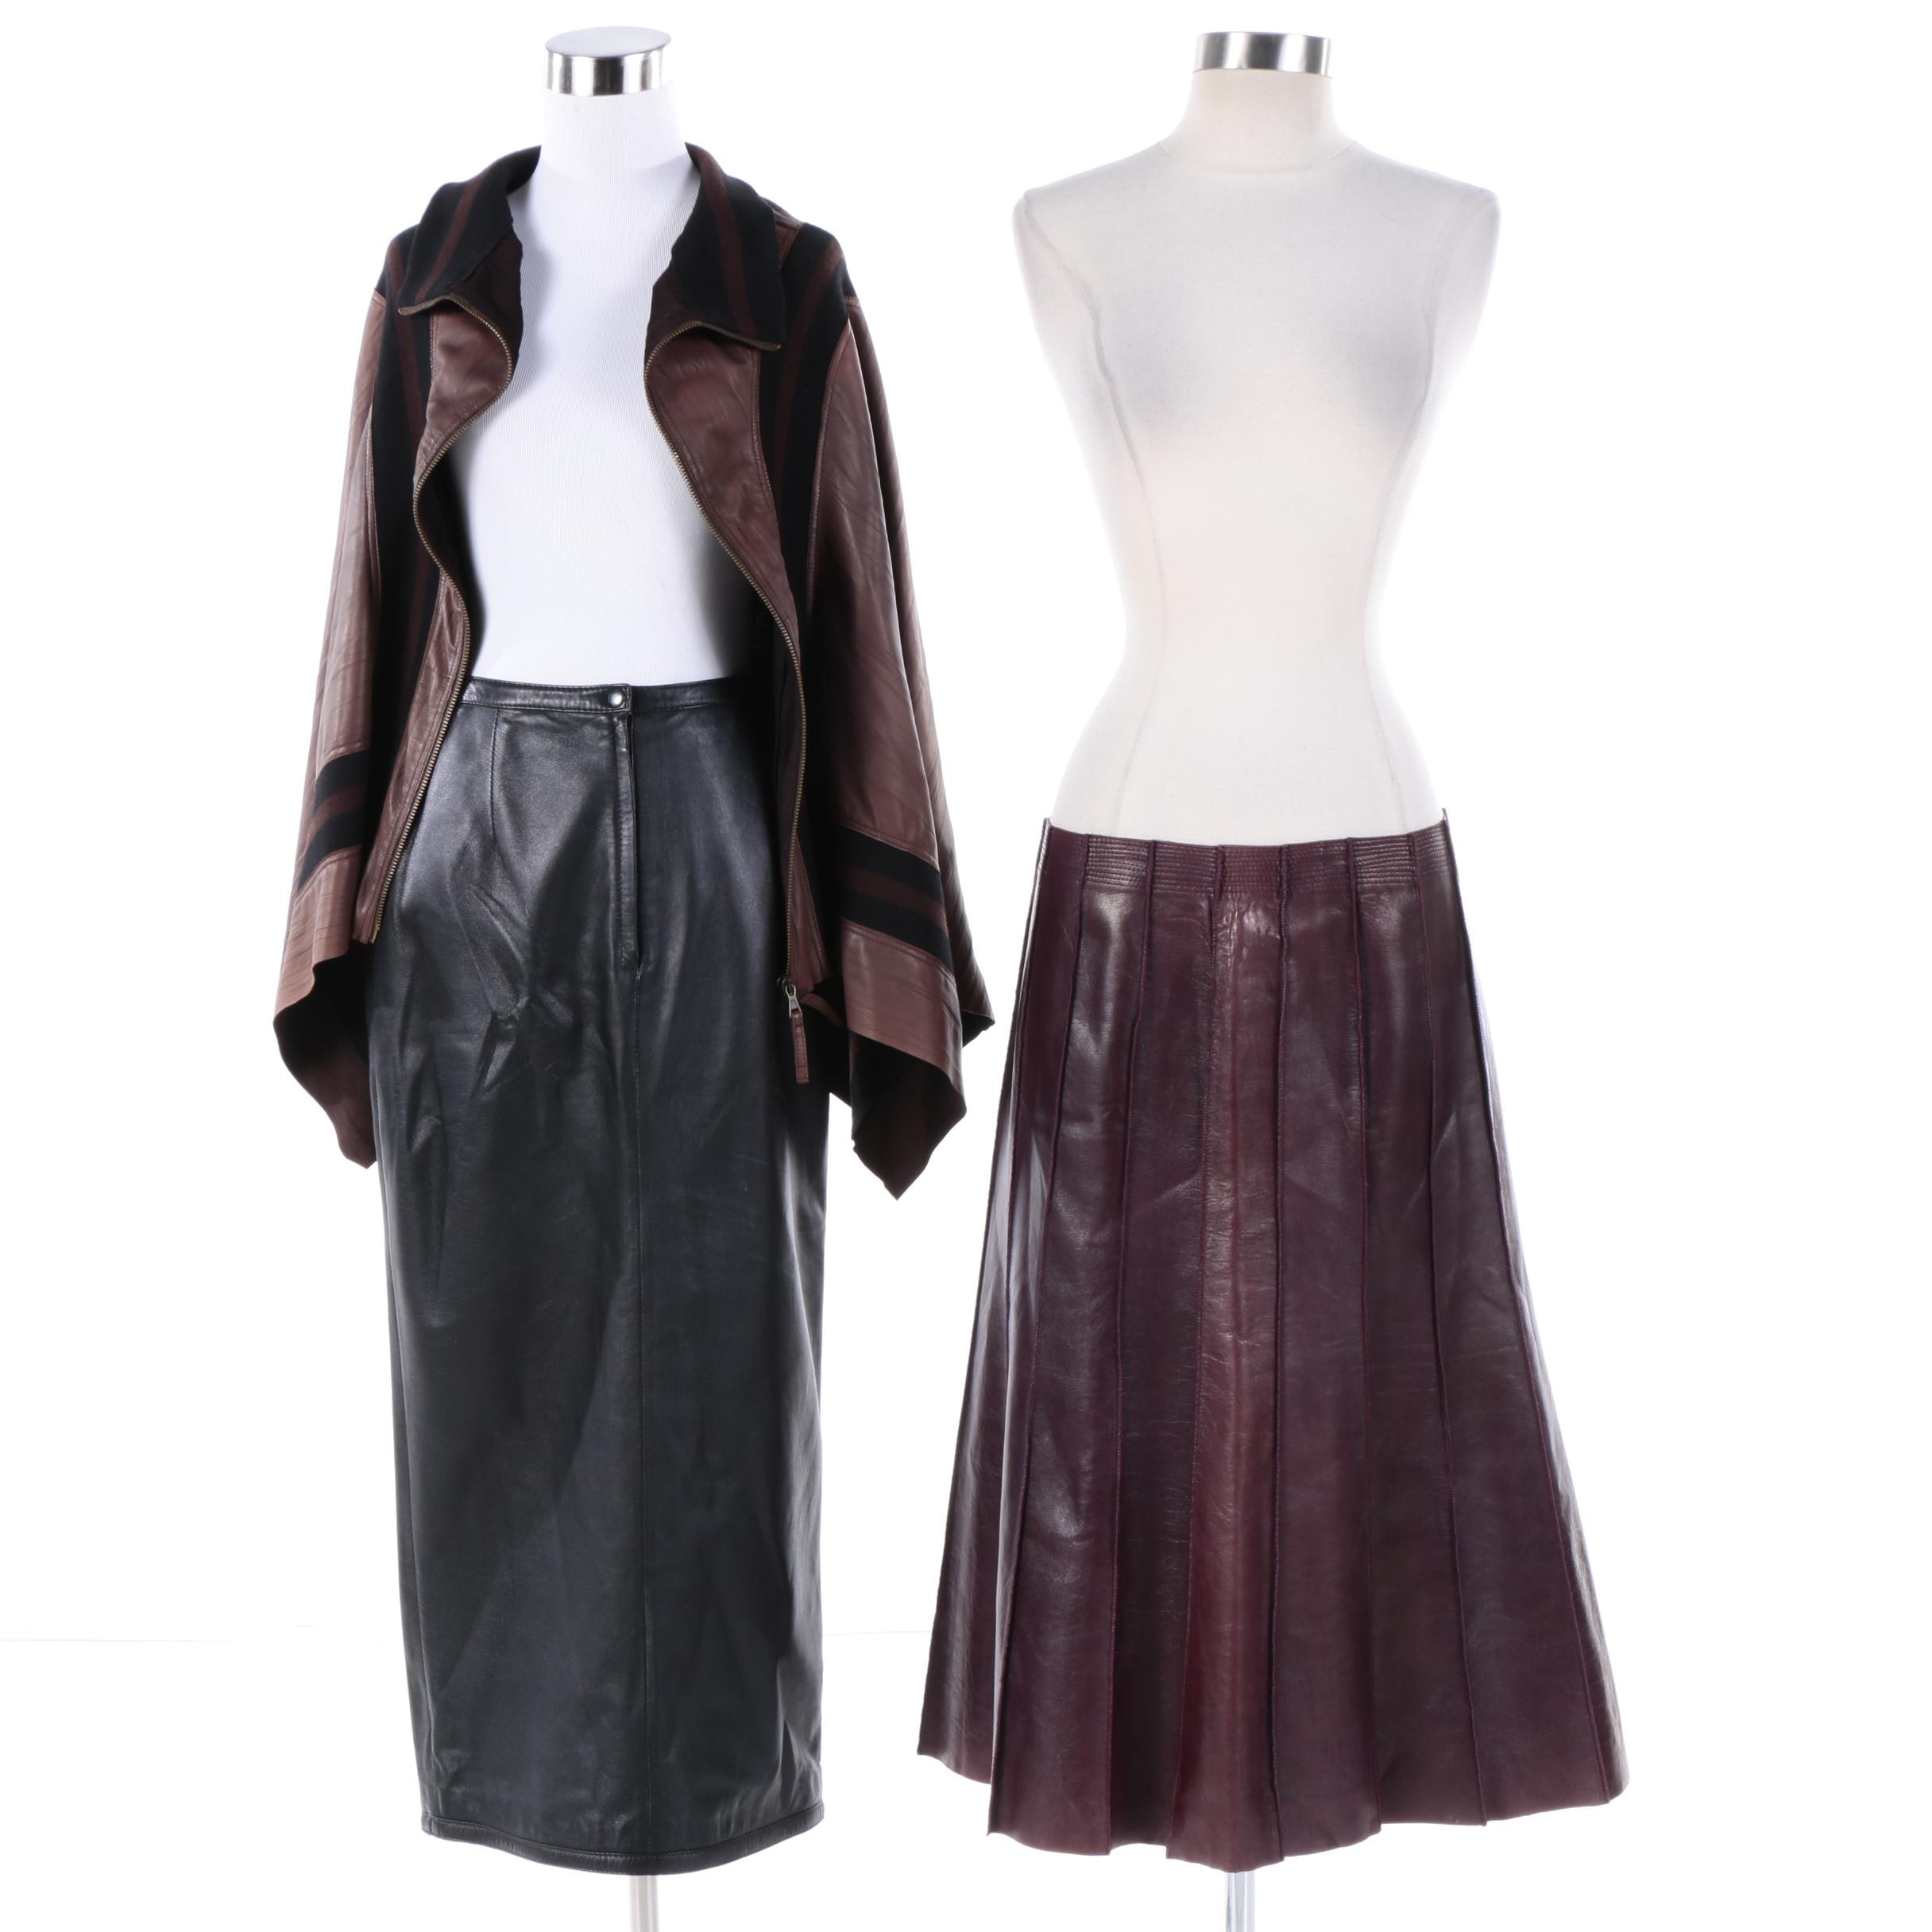 Women's Leather Cape Coat and Skirts Including Jean Paul Gaultier and Anne Klein